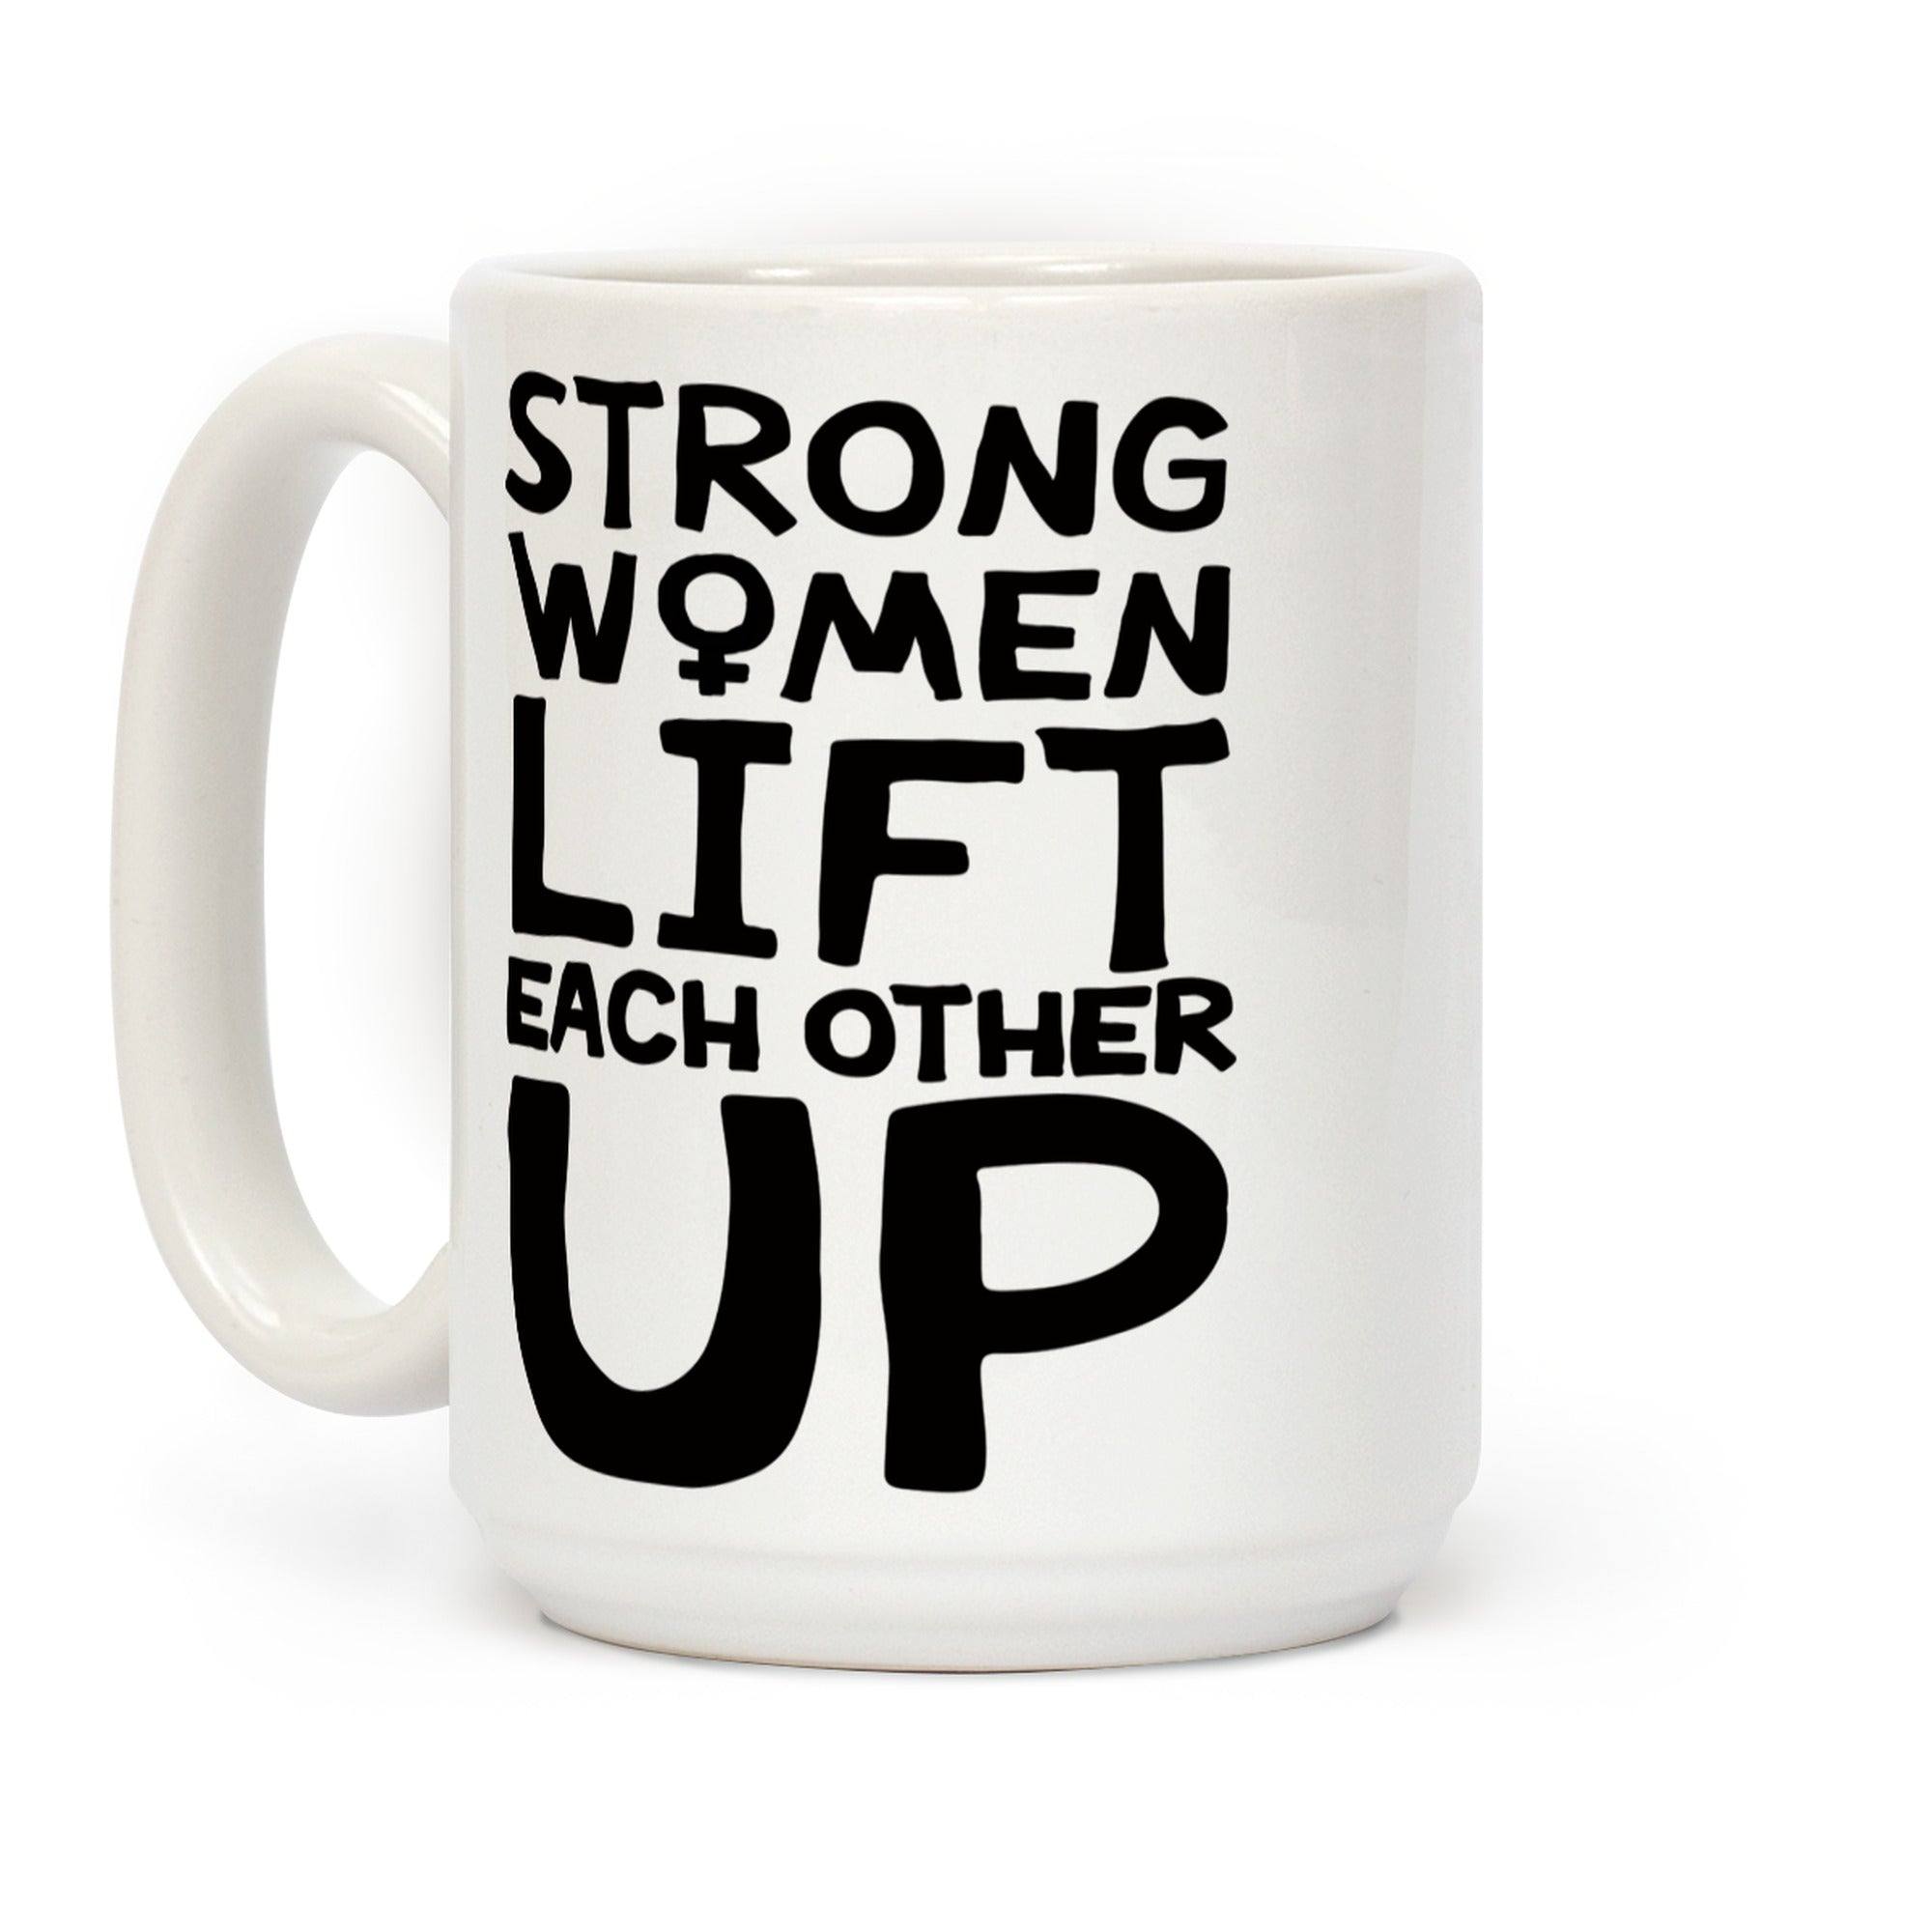 Strong Women Lift Each Other Up Ceramic Coffee Mug by LookHUMAN